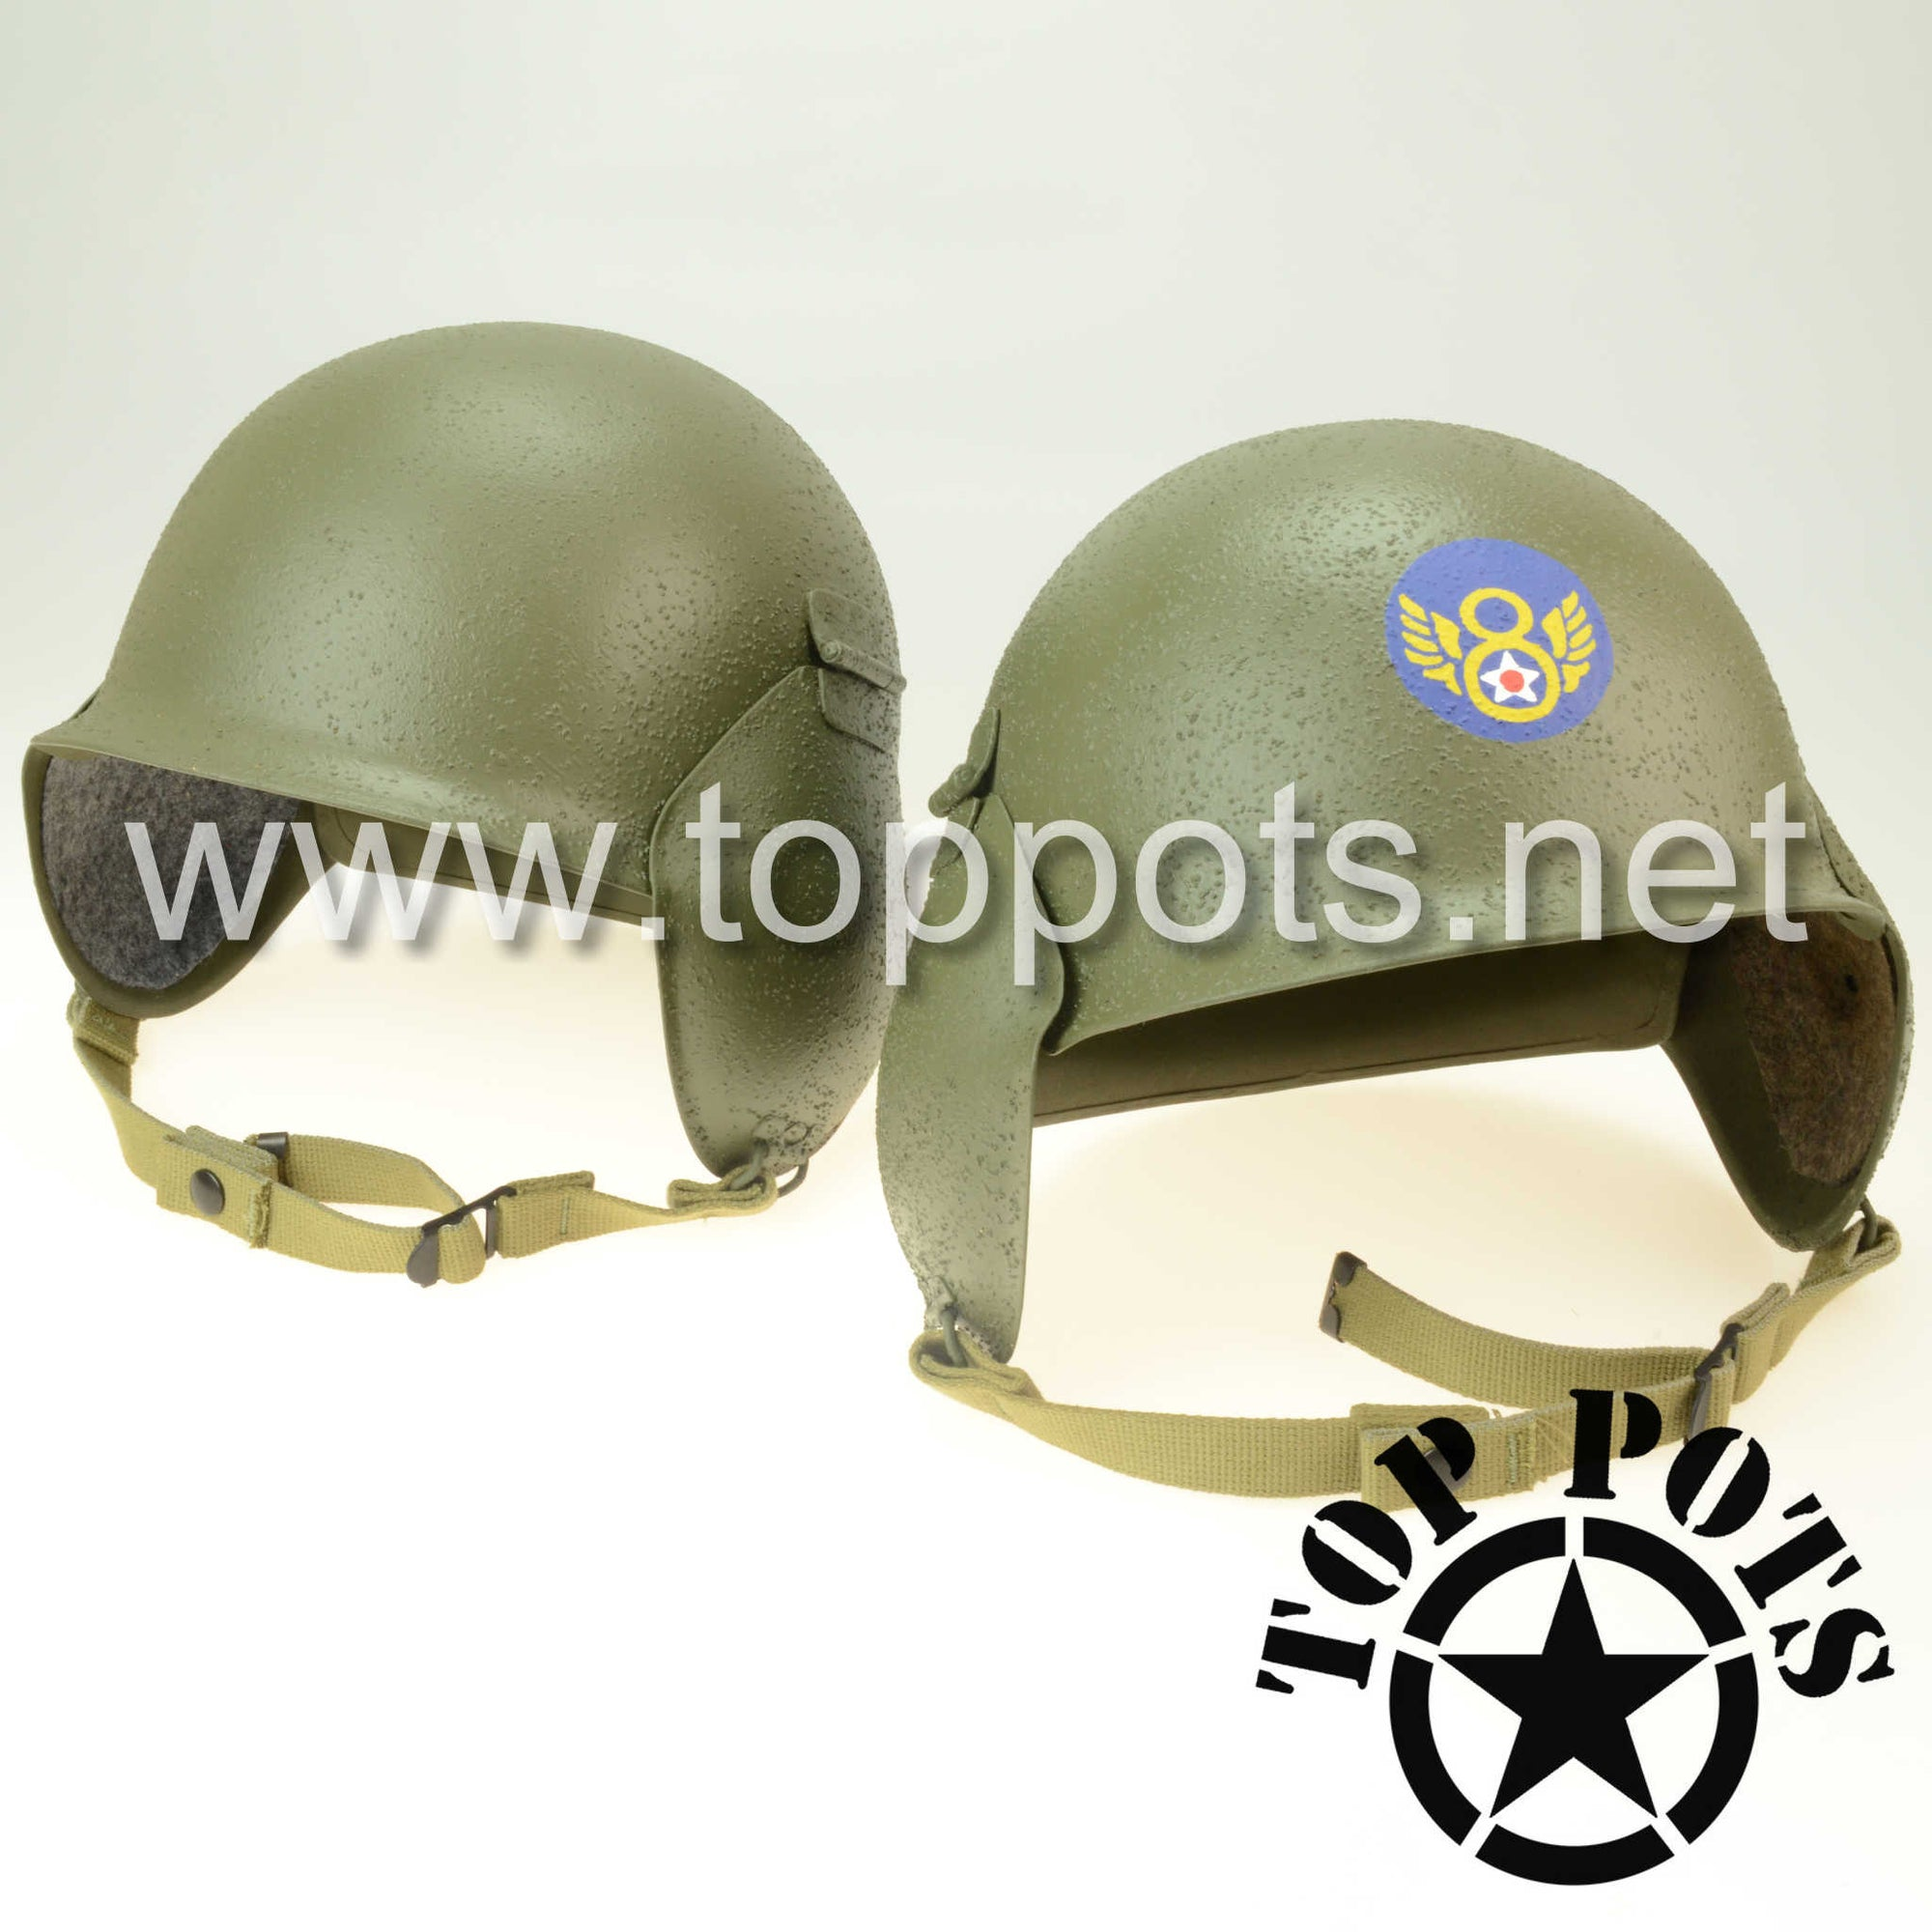 WWII US Army Air Corps M3 Flak Helmet and Liner Restoration Service